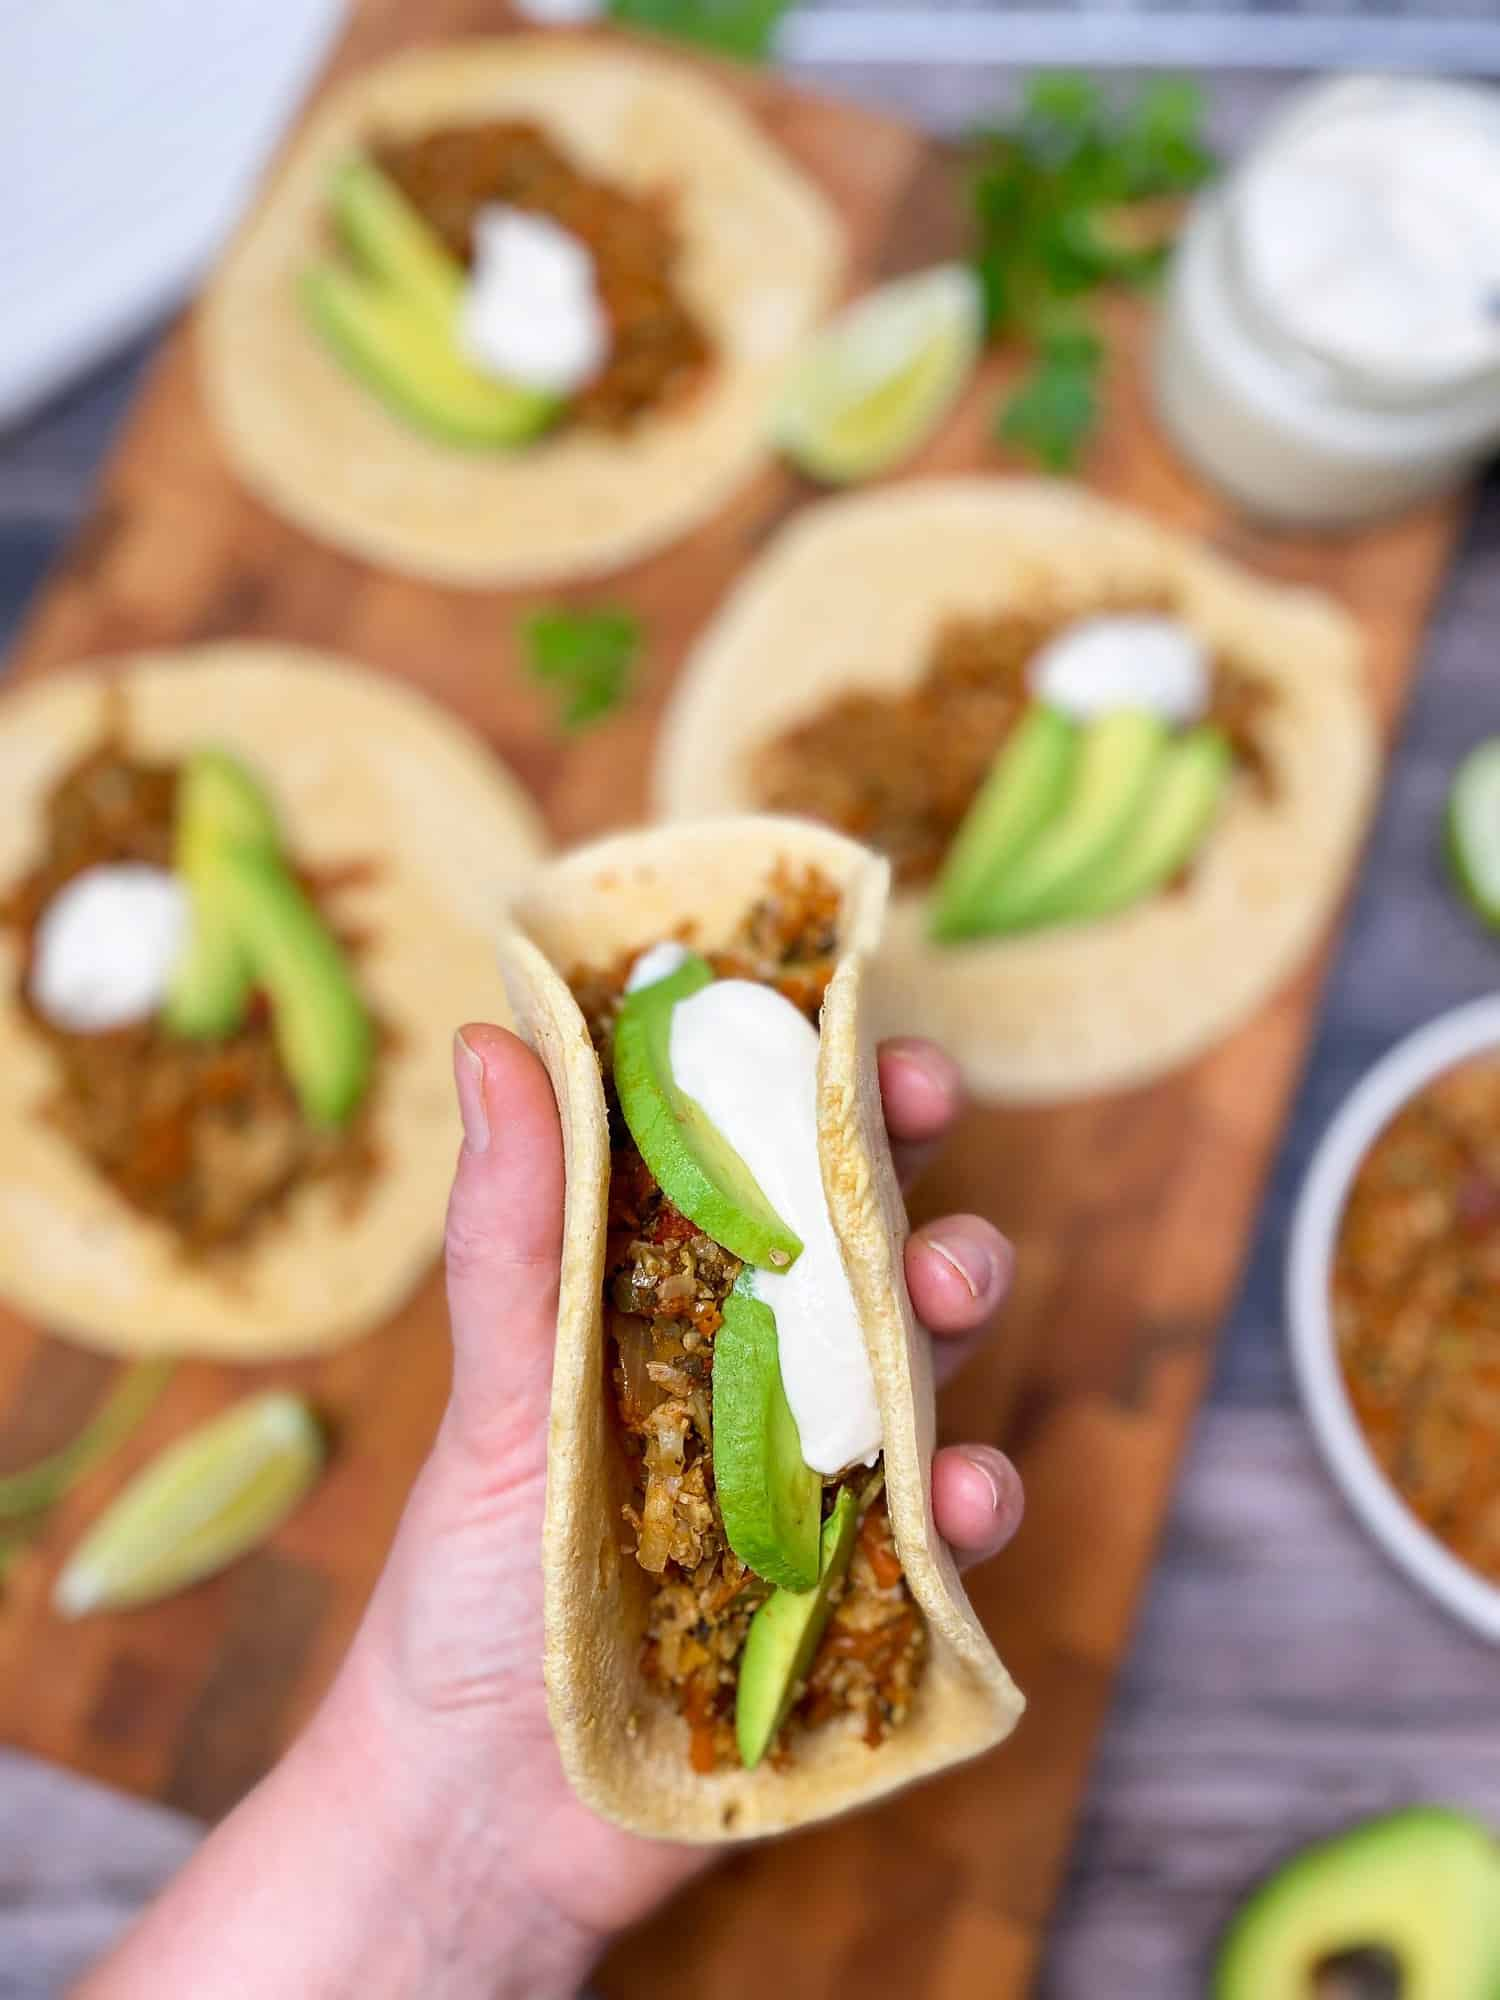 hand holding up a soft taco filled with ground veggies, avocado and sour cream